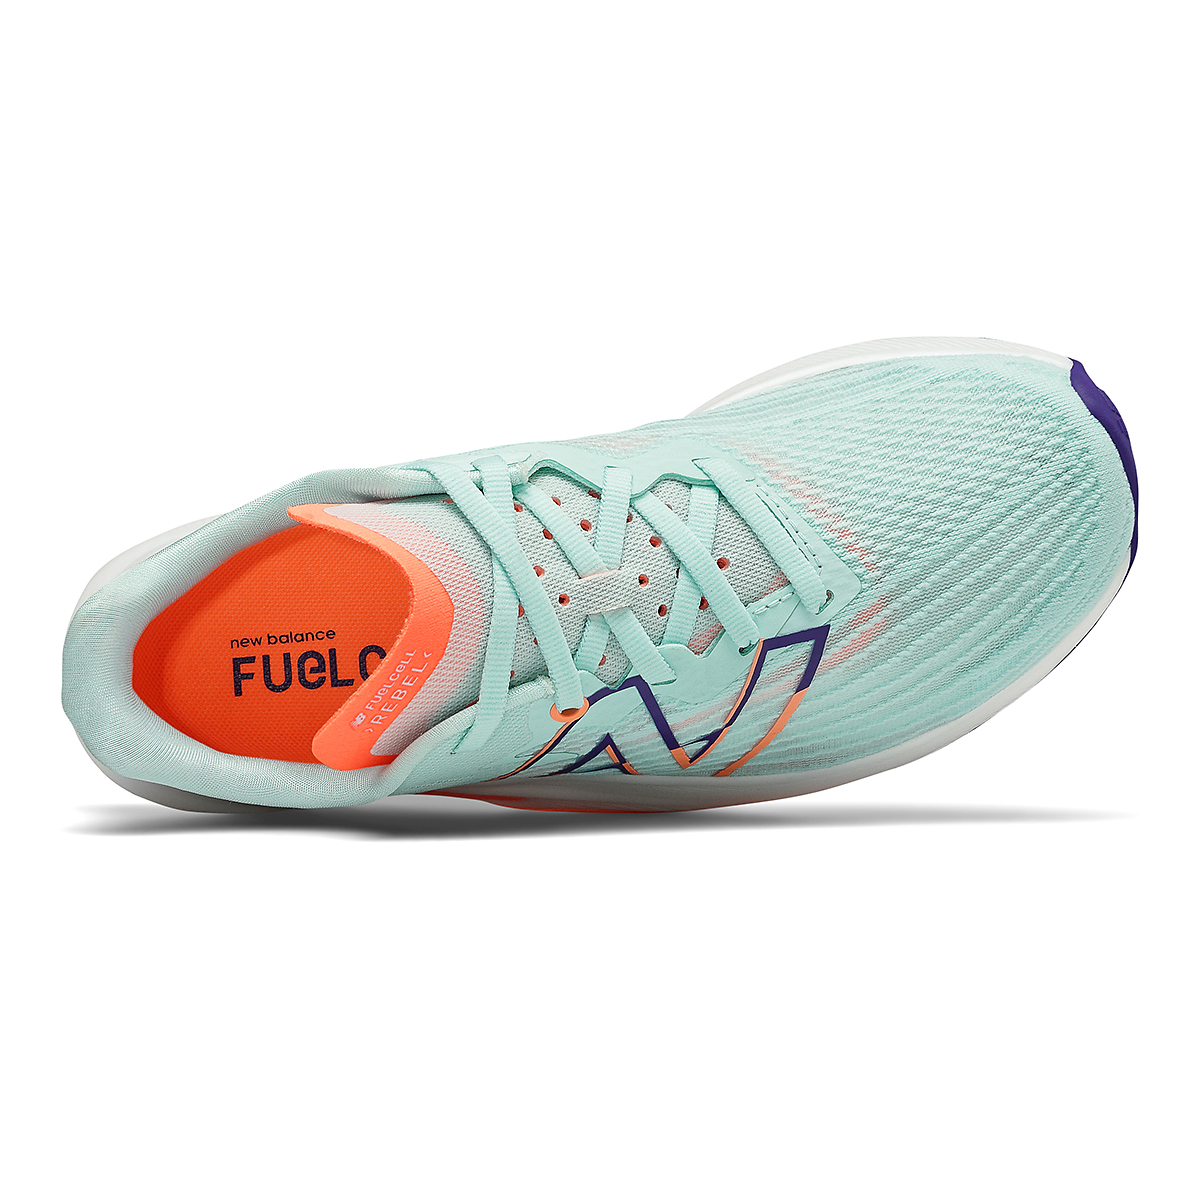 Women's New Balance Fuelcell Rebel V2 Running Shoe - Color: White Mint/Citrus Punch - Size: 7 - Width: Regular, White Mint/Citrus Punch, large, image 3